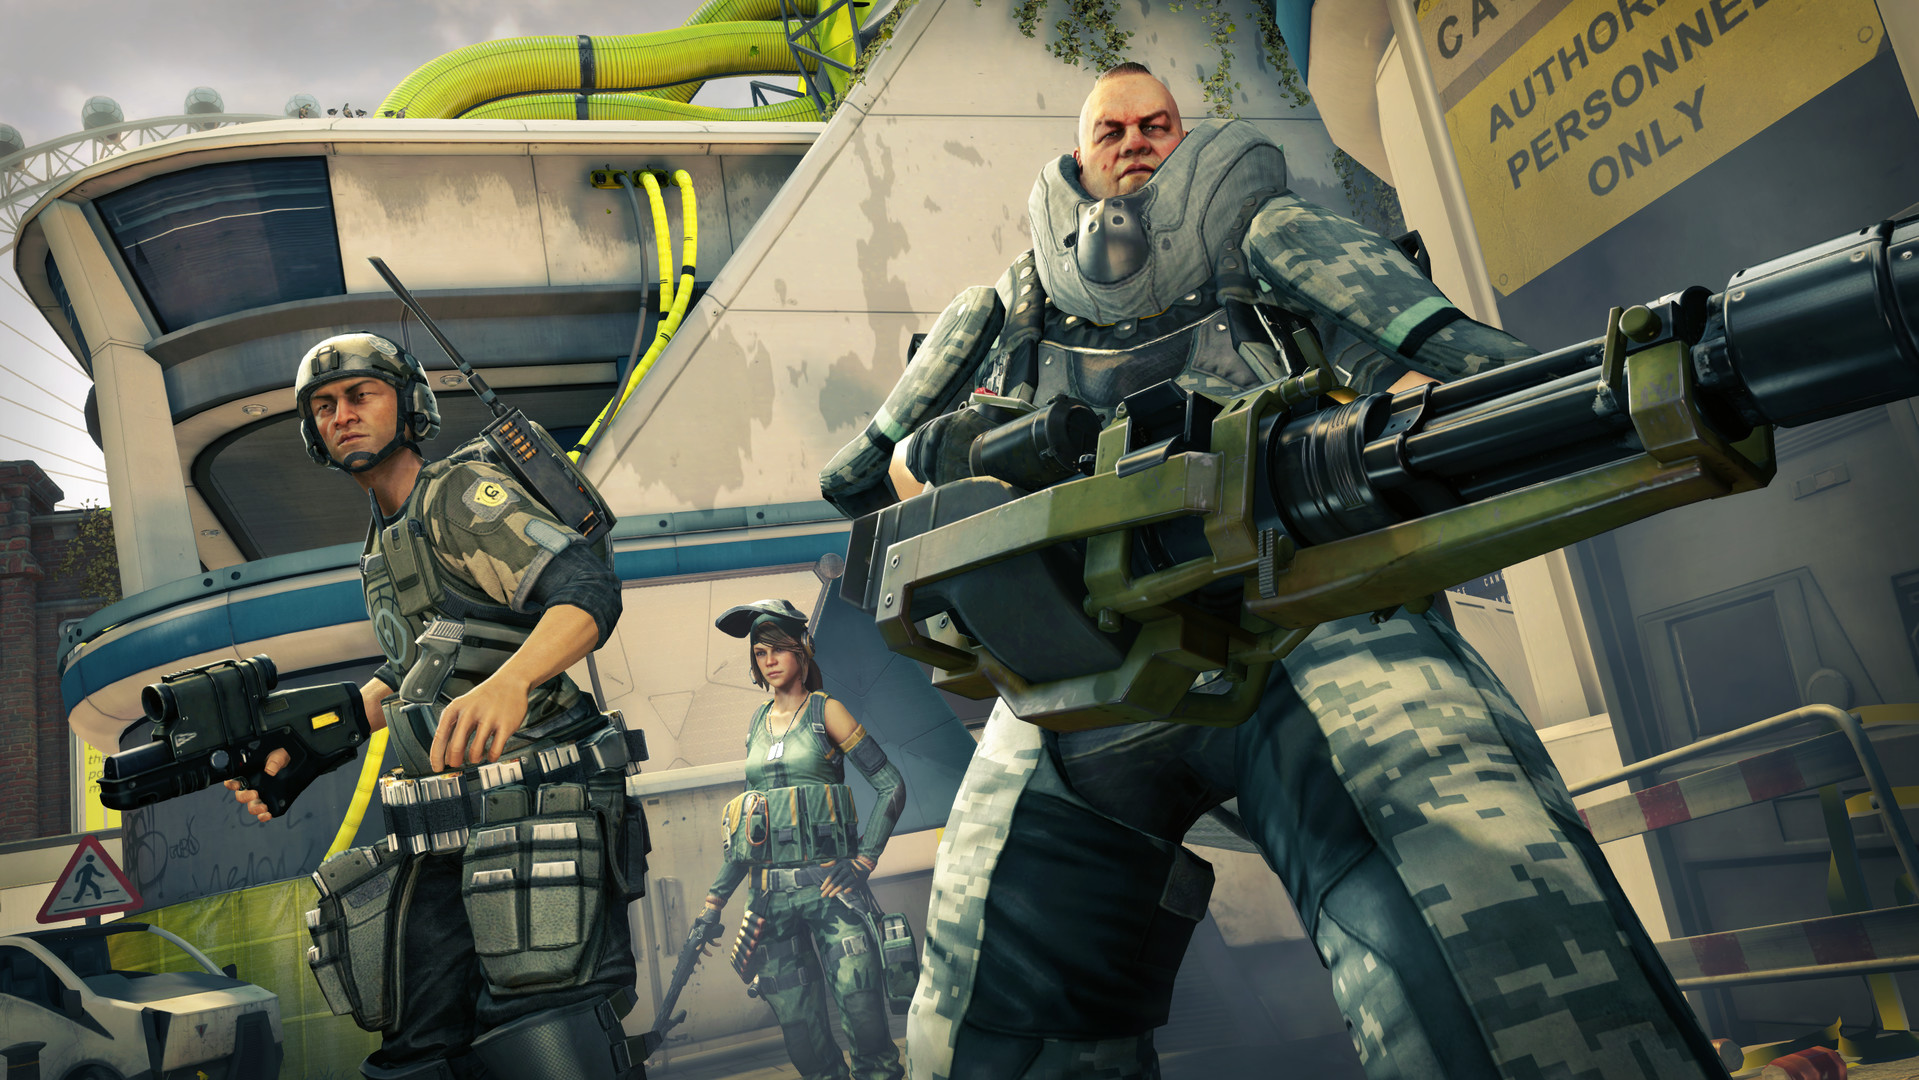 Find the best laptop for Dirty Bomb